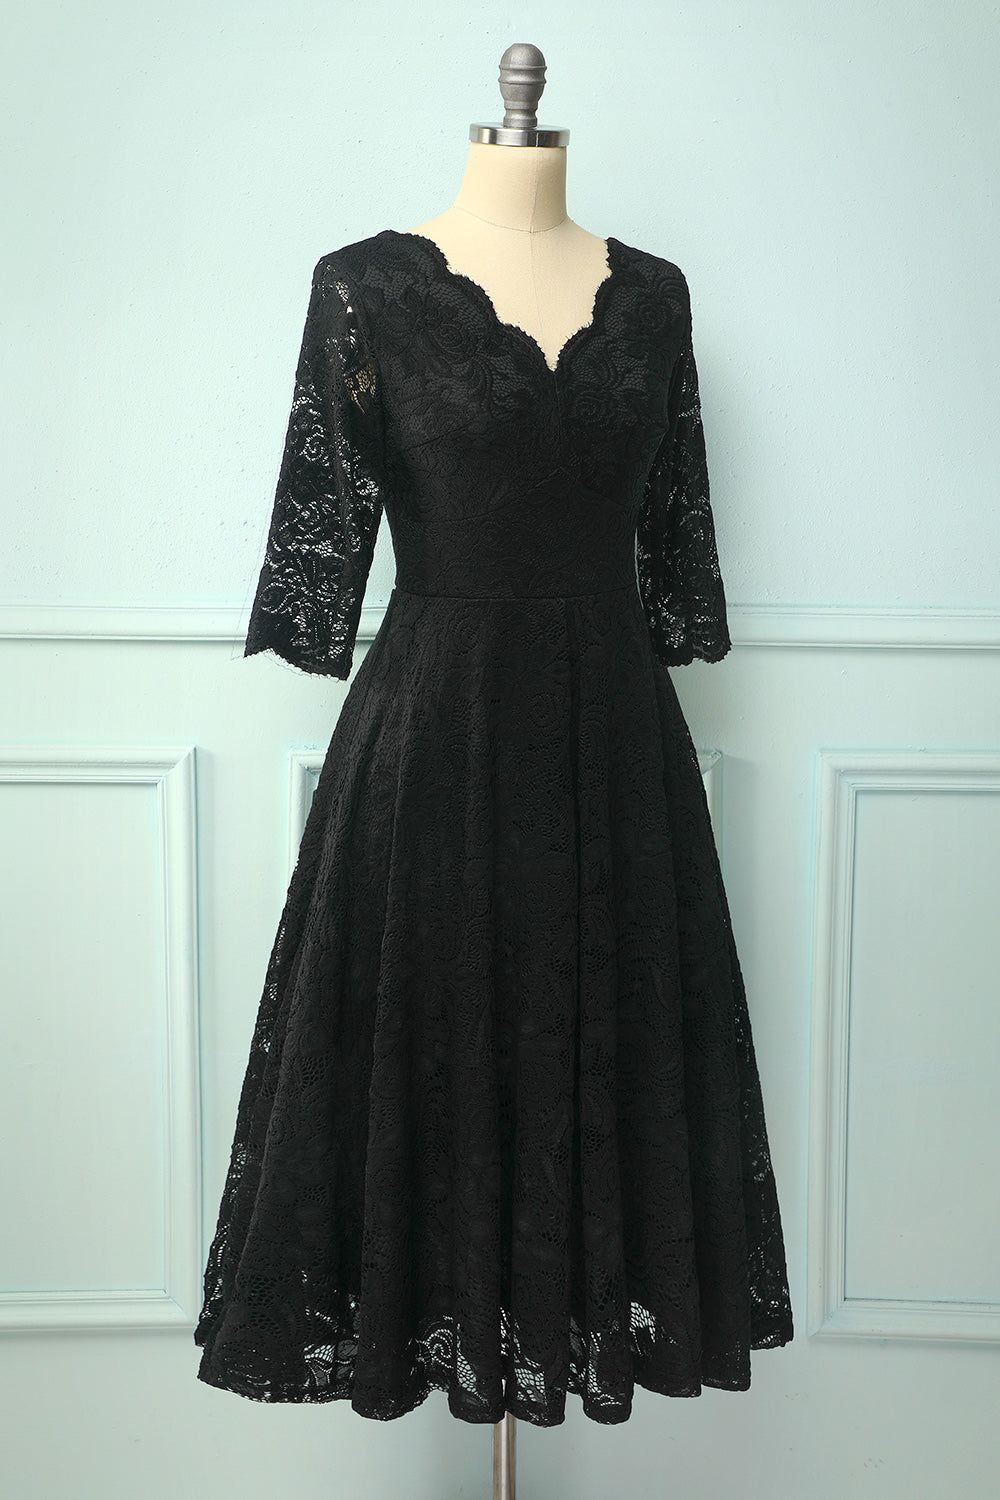 Black 3/4 Sleeves Formal Dress